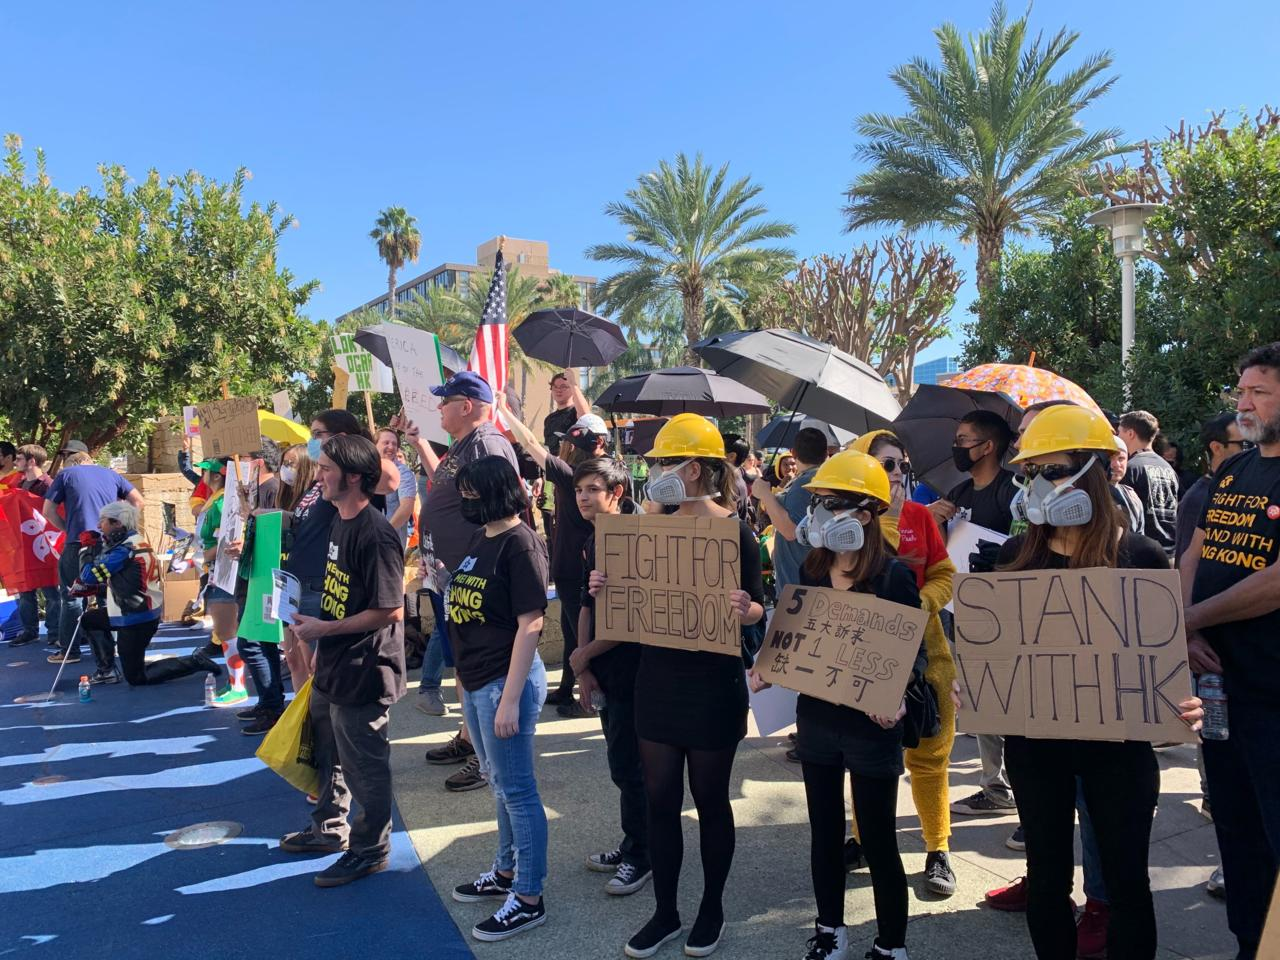 The Freedom Hong Kong protest outside BlizzCon 2019.